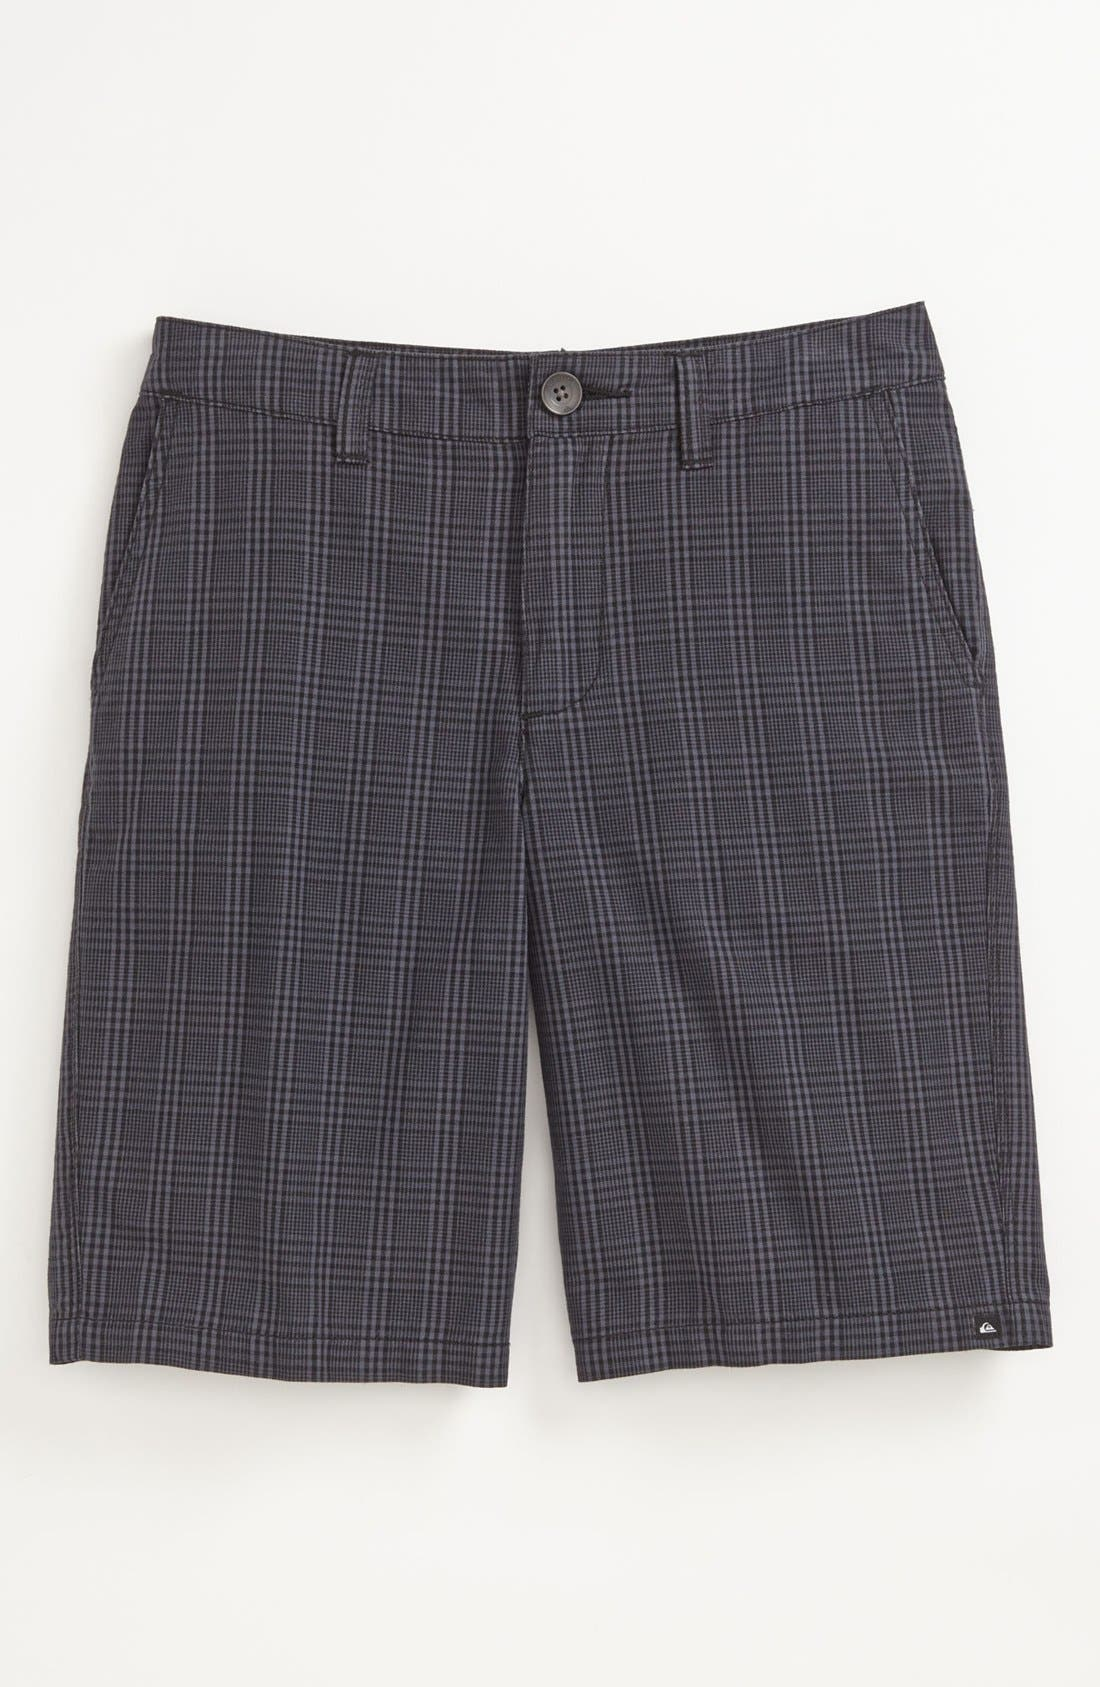 Alternate Image 1 Selected - Quiksilver 'Agenda Suiting' Plaid Shorts (Big Boys)